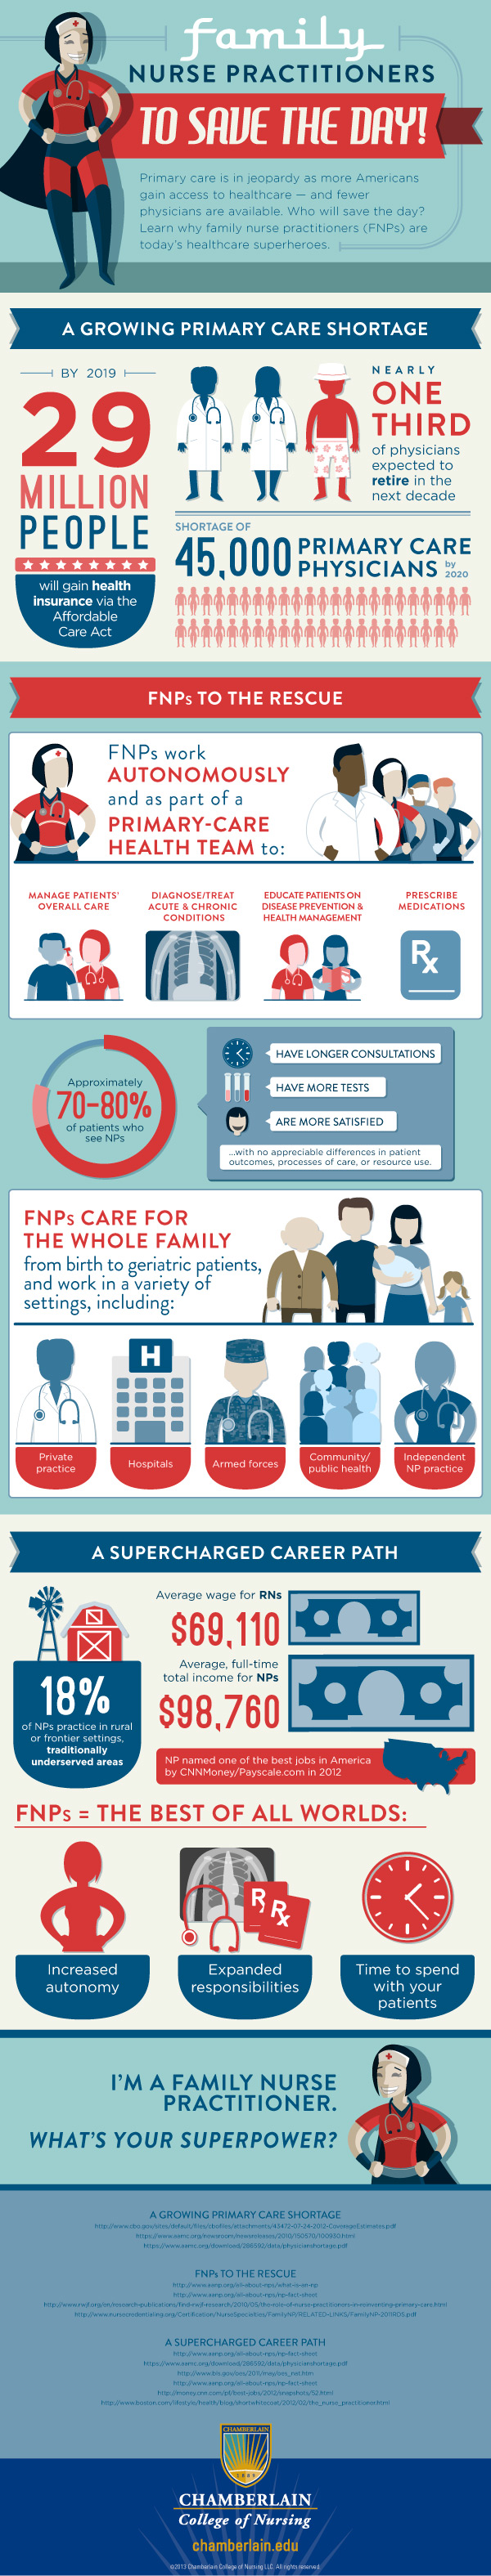 Facts About Nurse Practitioners